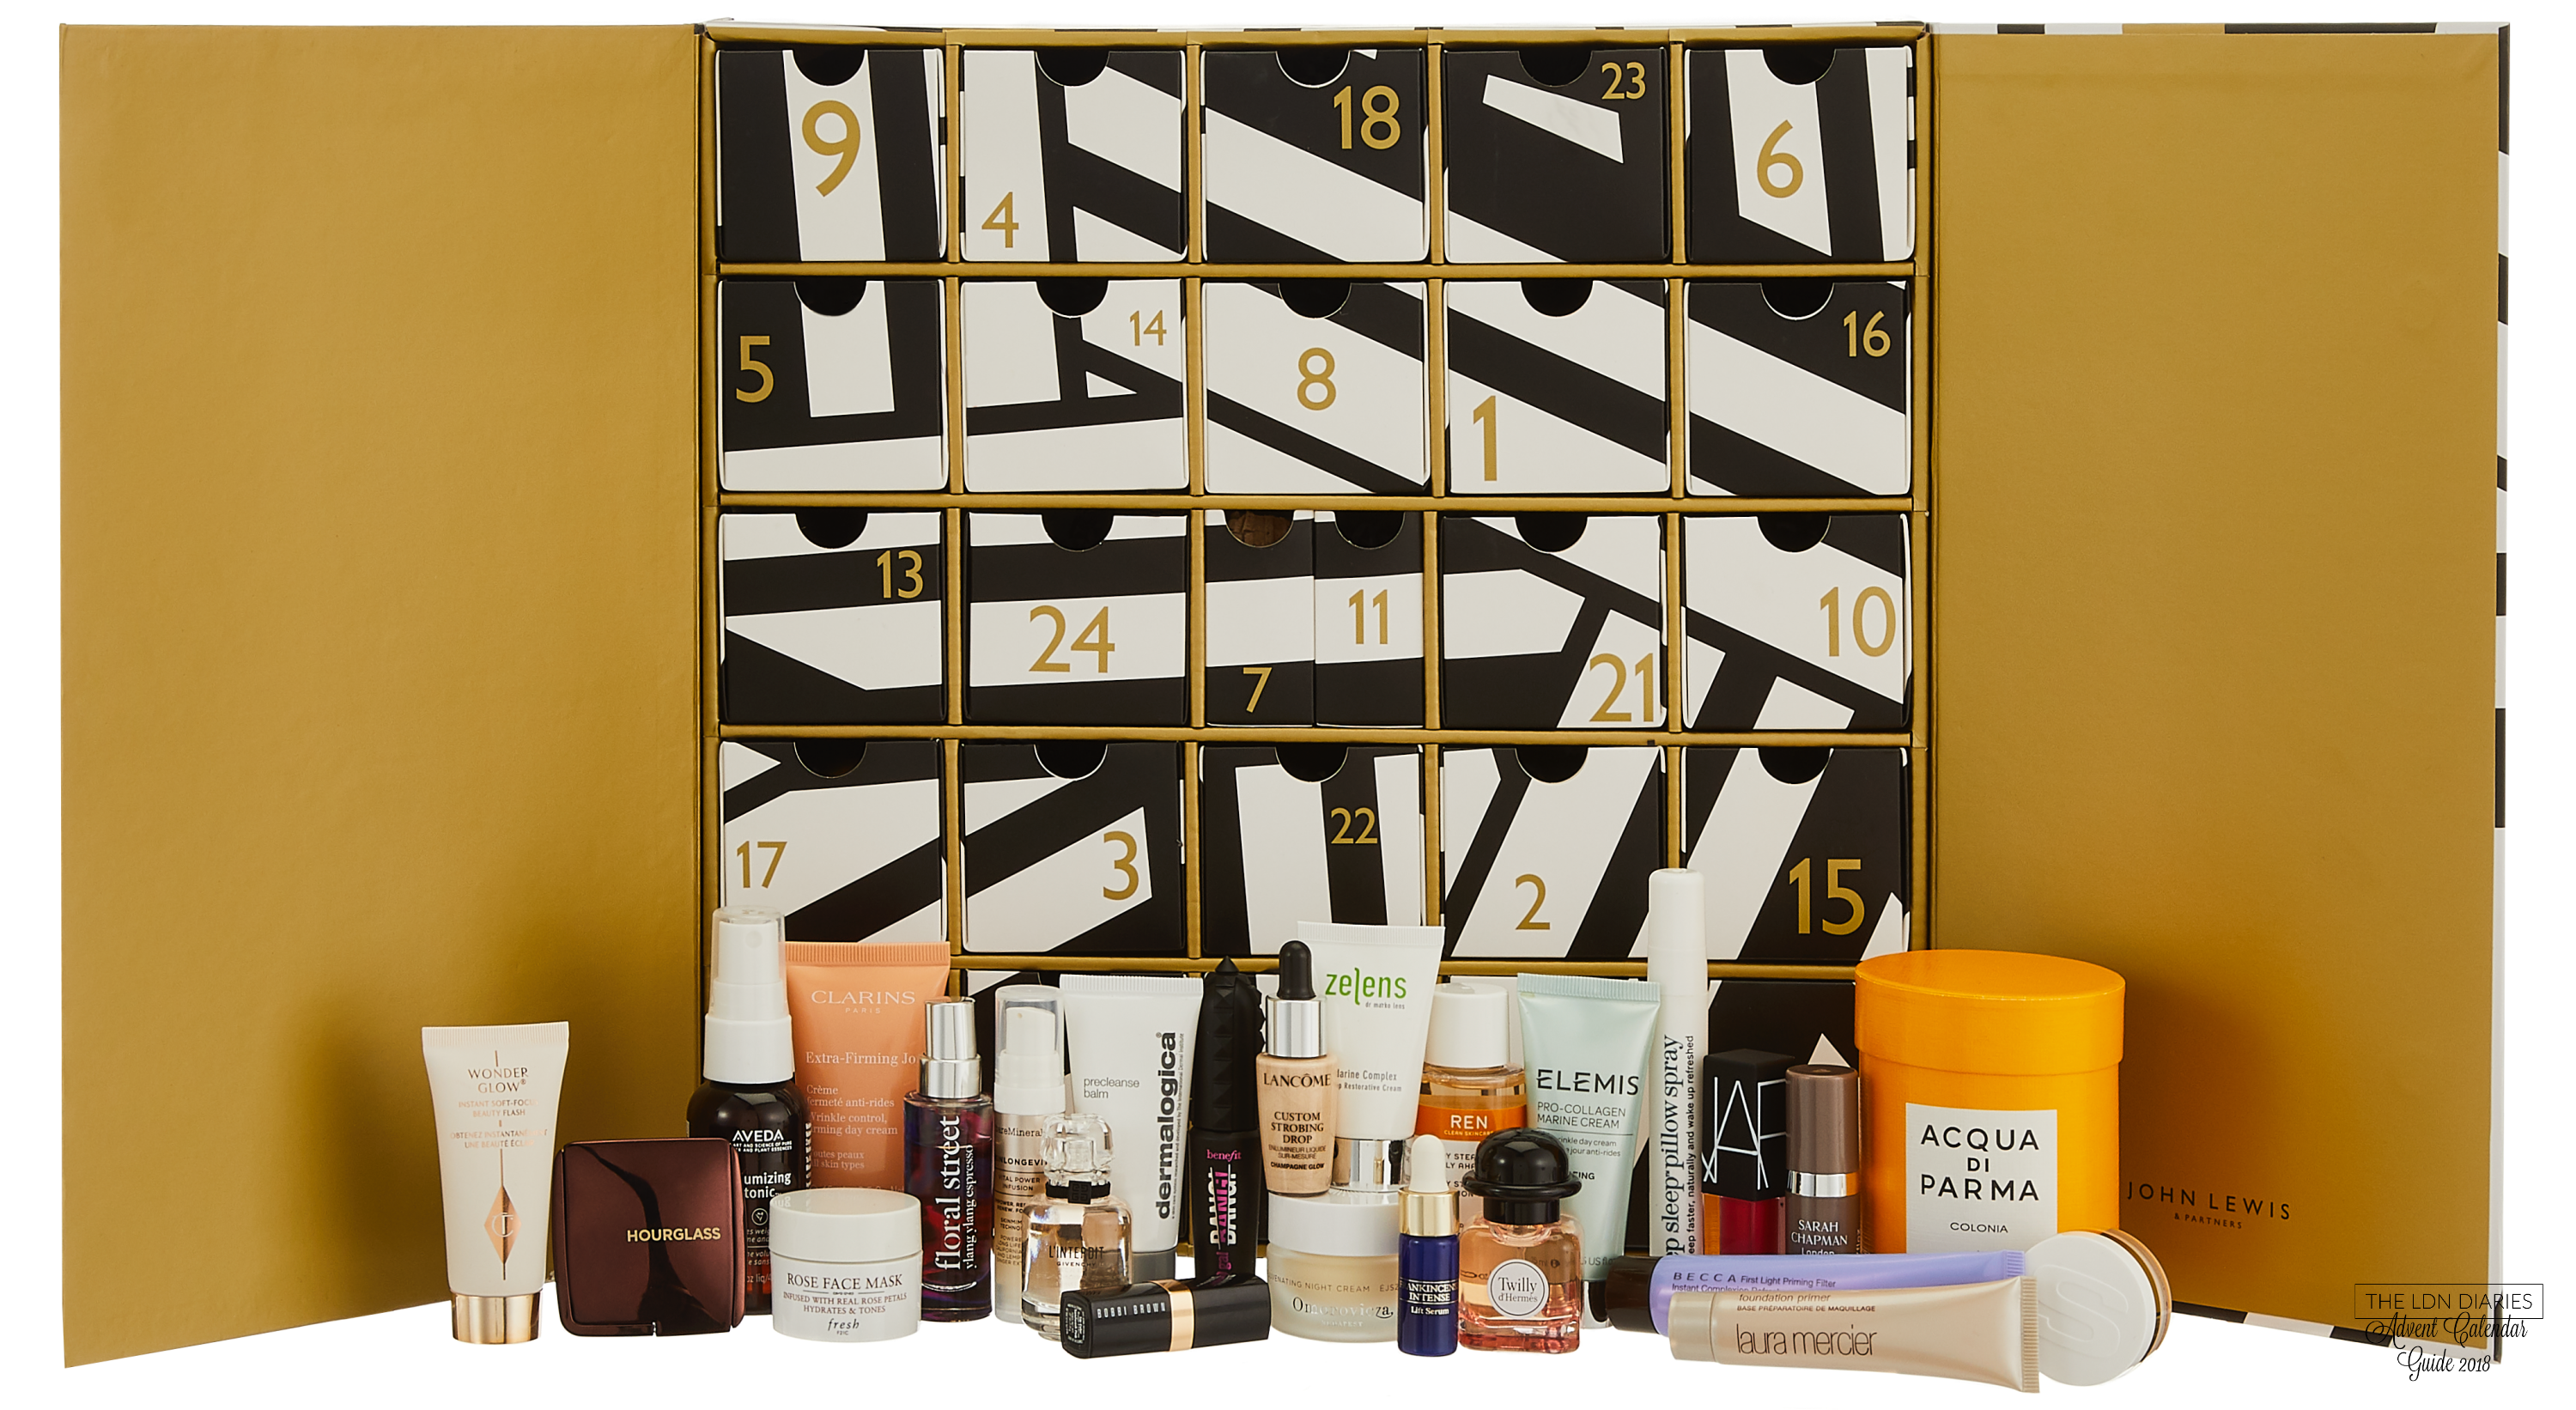 John Lewis Beauty Advent Calendar 2018 - The LDN Diaries